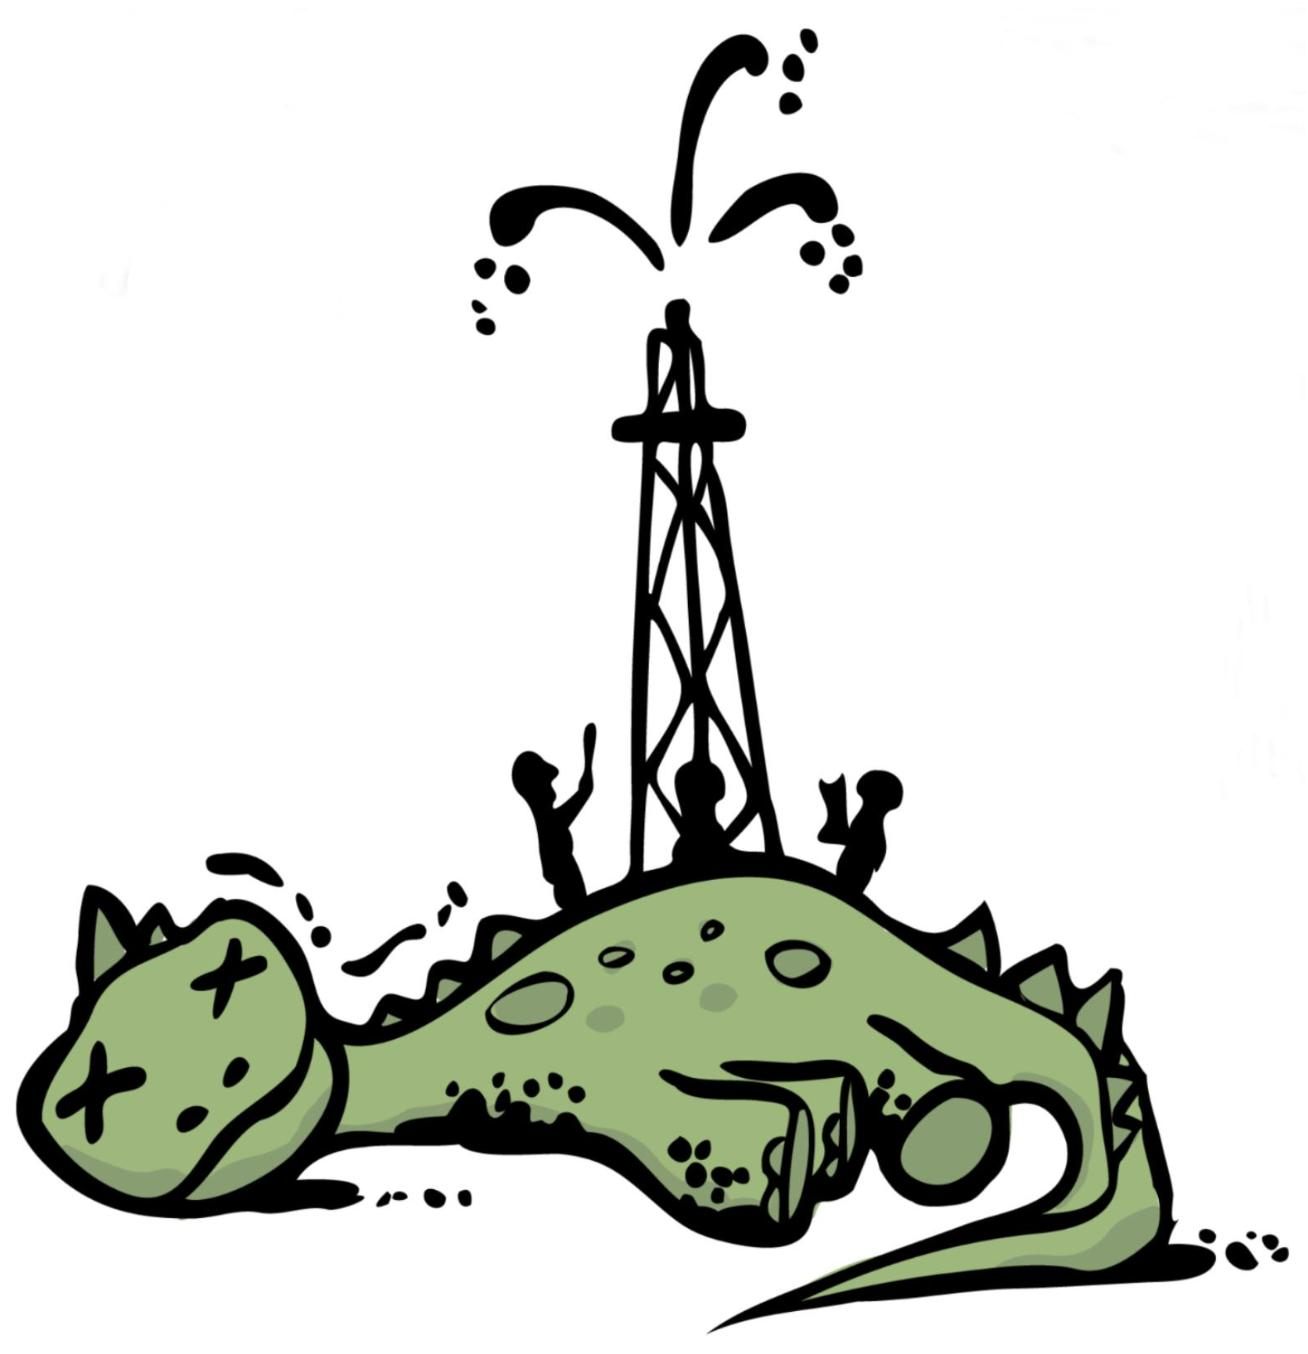 Fossil fuel clipart.